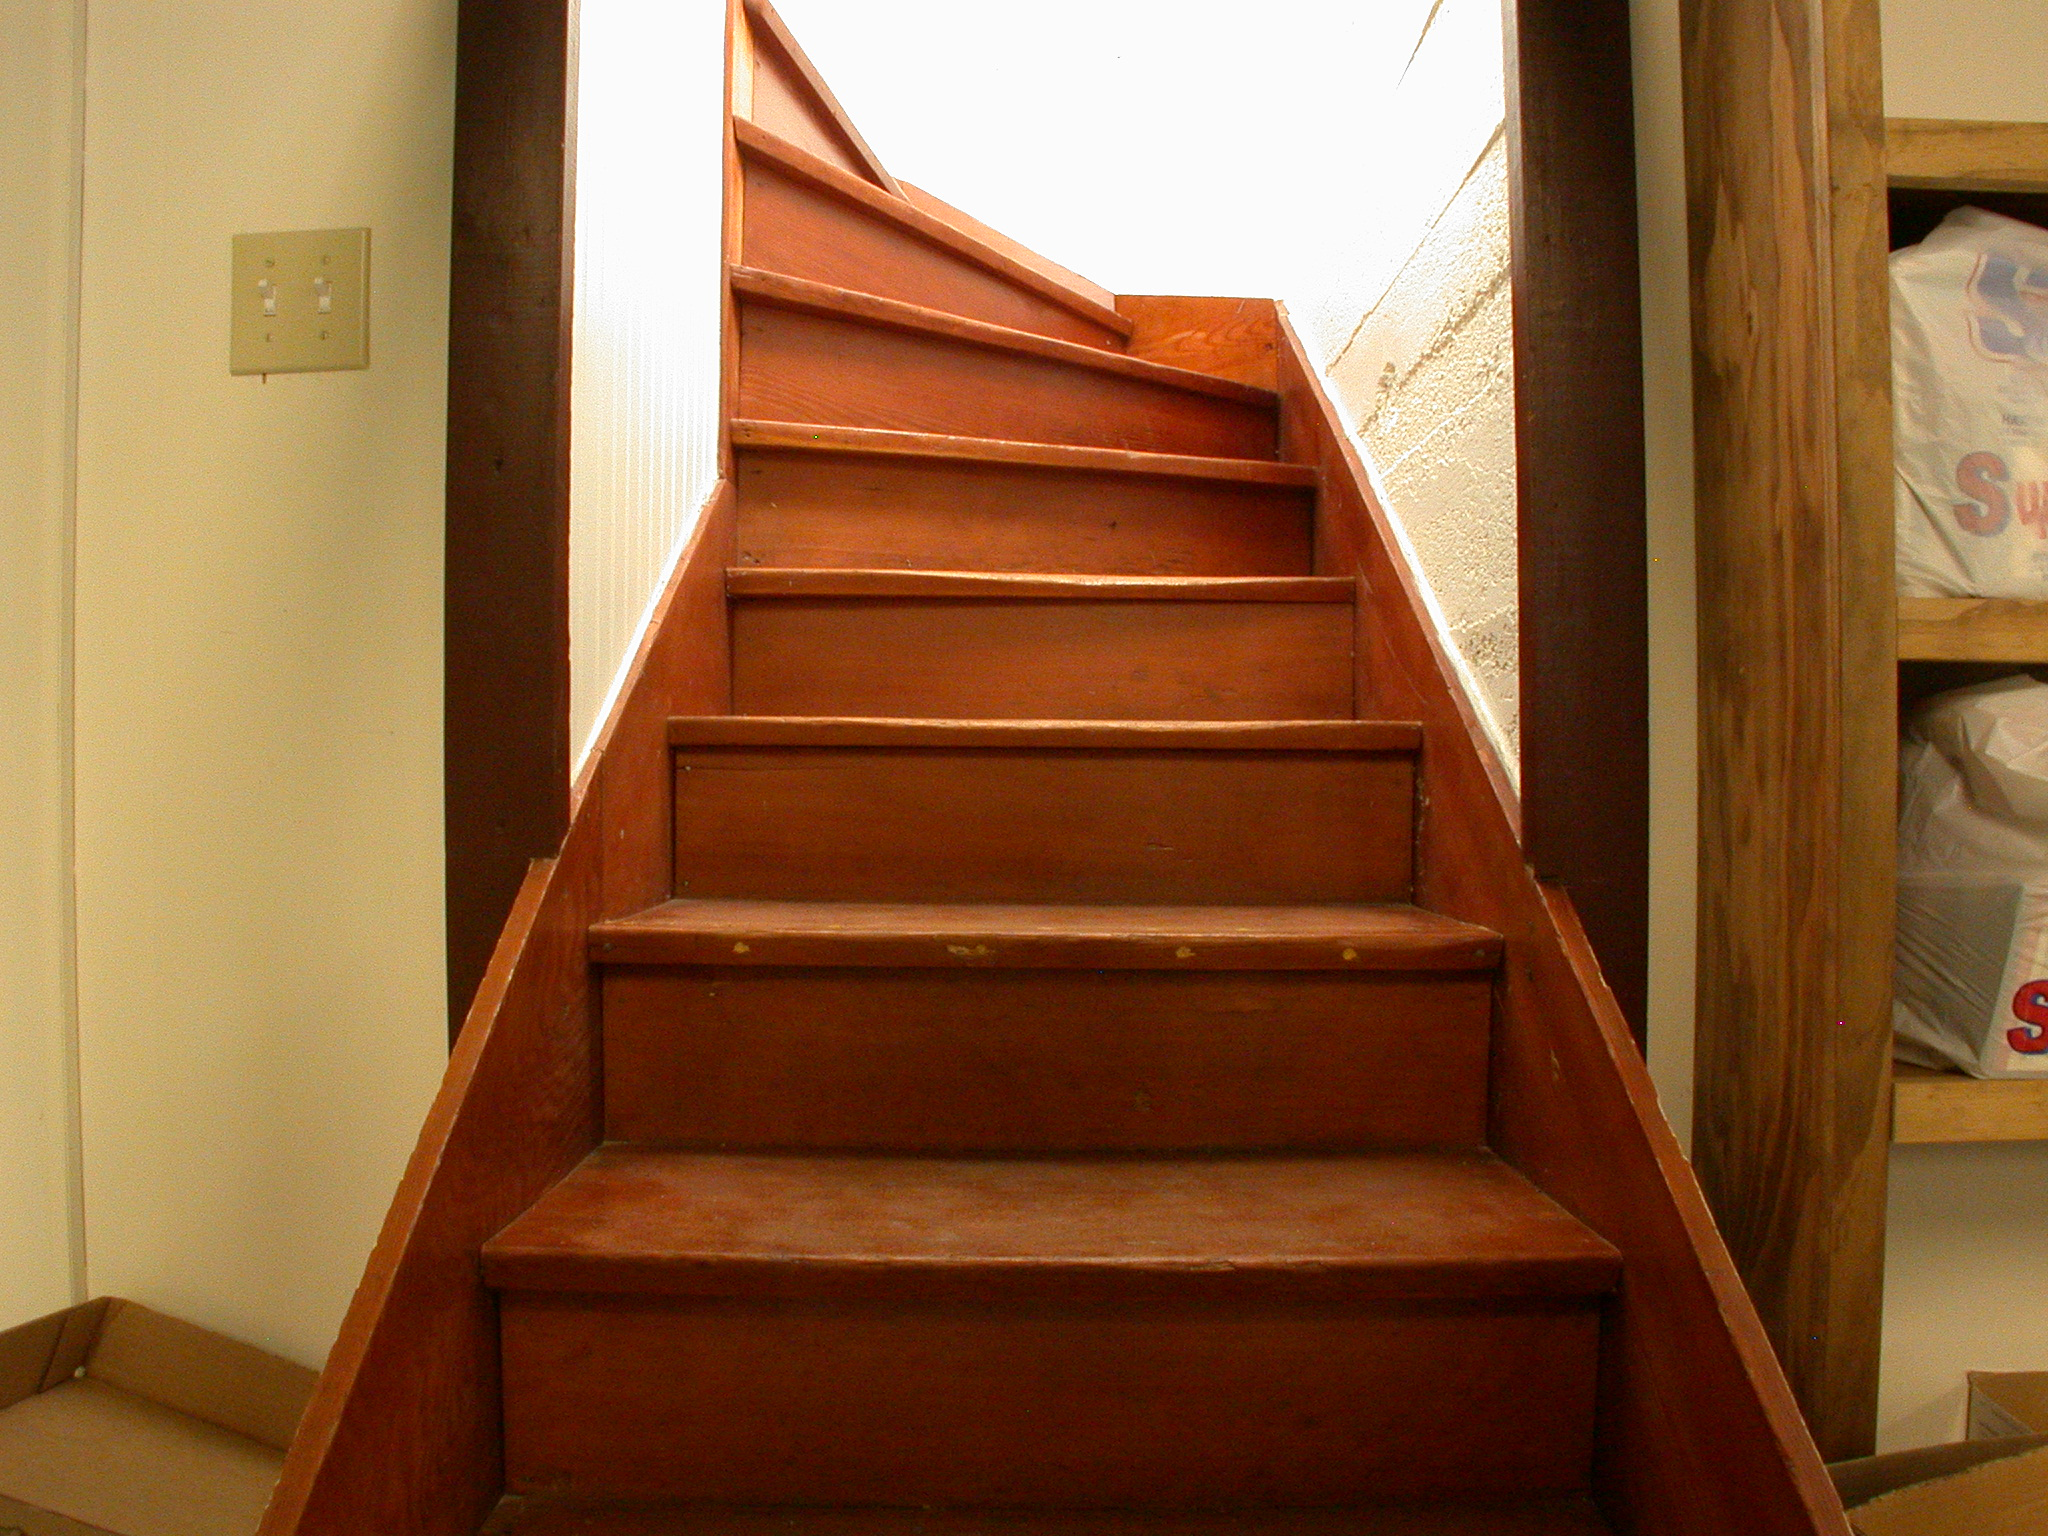 wooden staircase going up and winding to the left